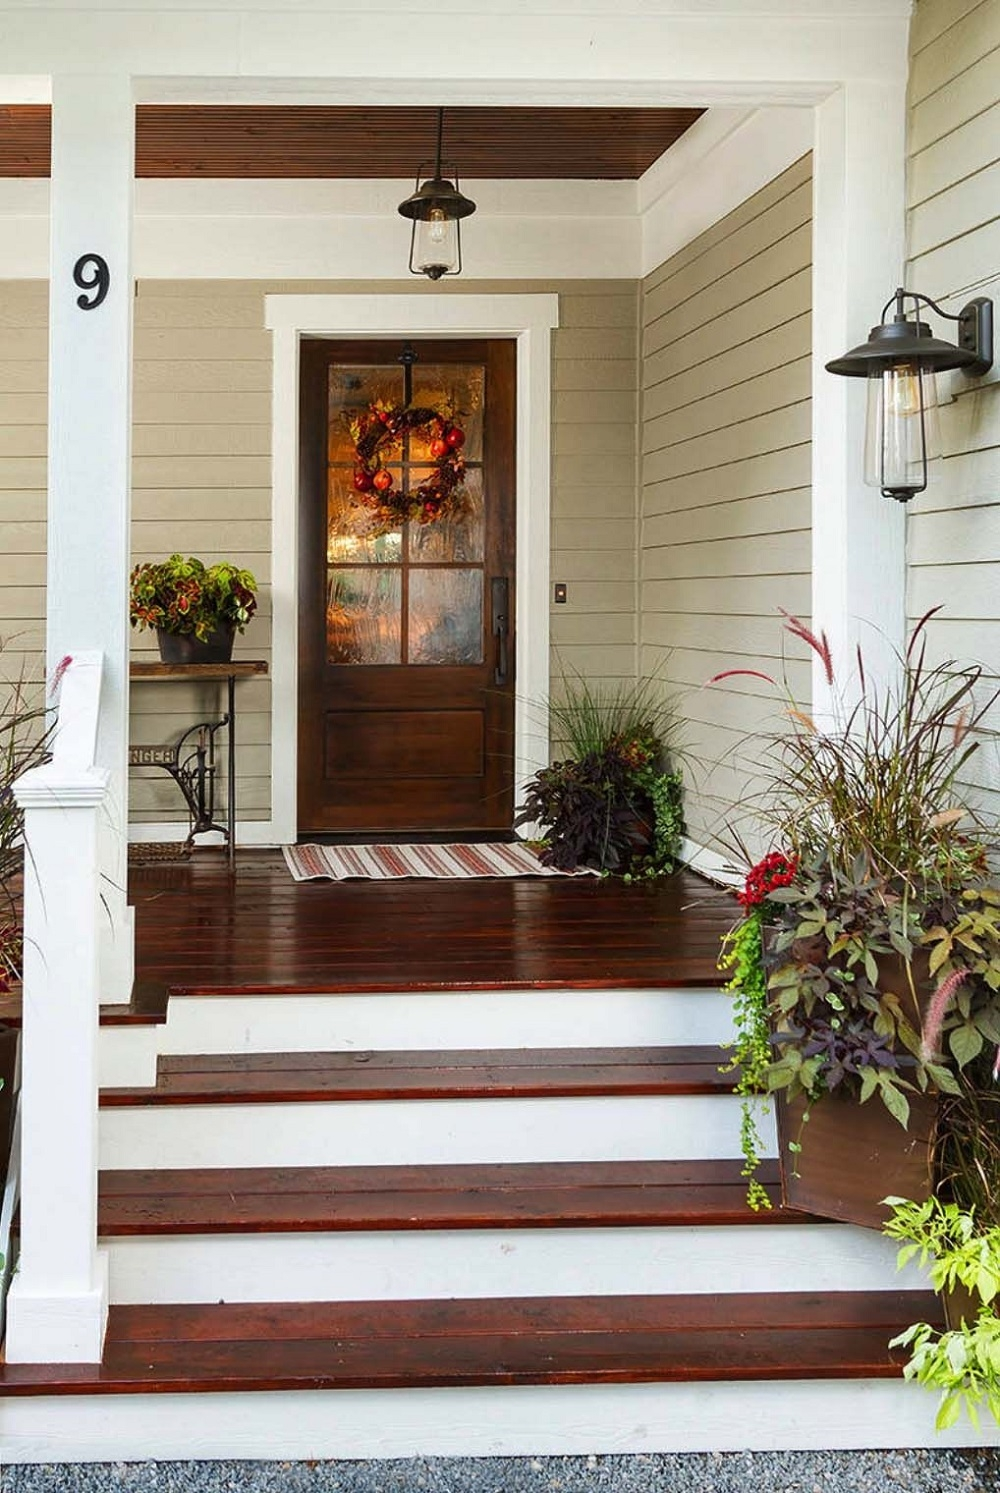 Front Step Ideas To Make Your House Look Stunning | House Design With Stairs In Front | Victorian | Second Floor | Colour | Residential | Low Cost 2 Bhk House